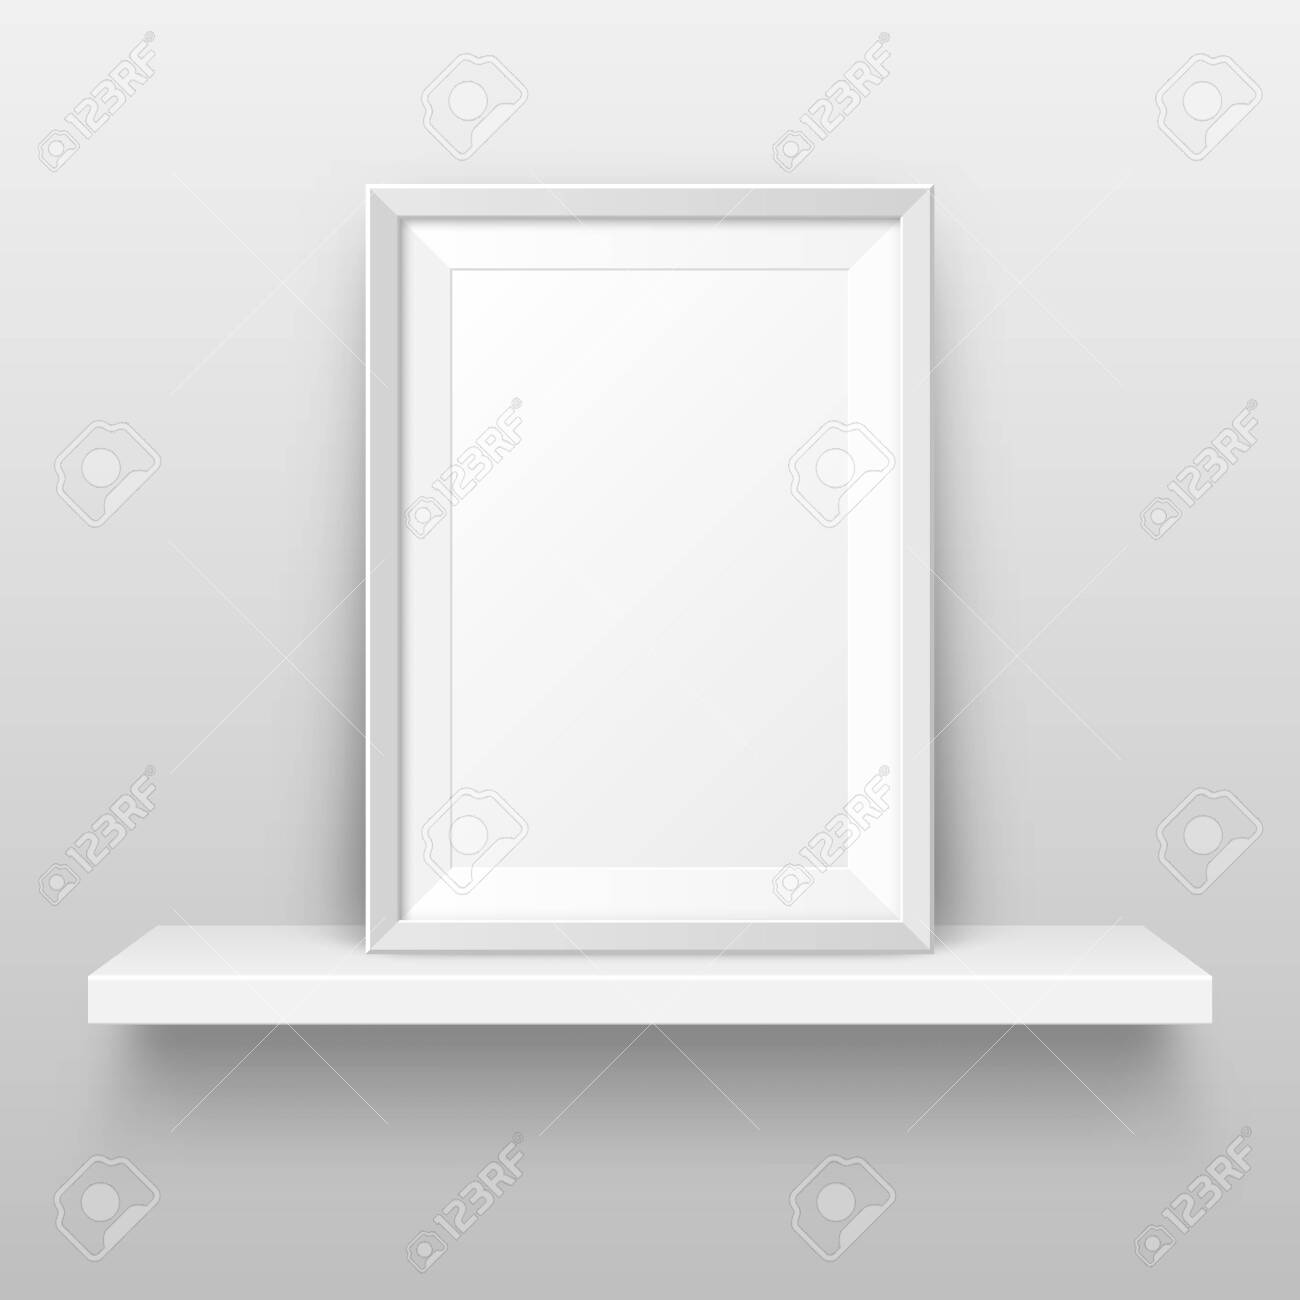 Realistic Wall Shelf With Empty Picture Frame Poster Mockup